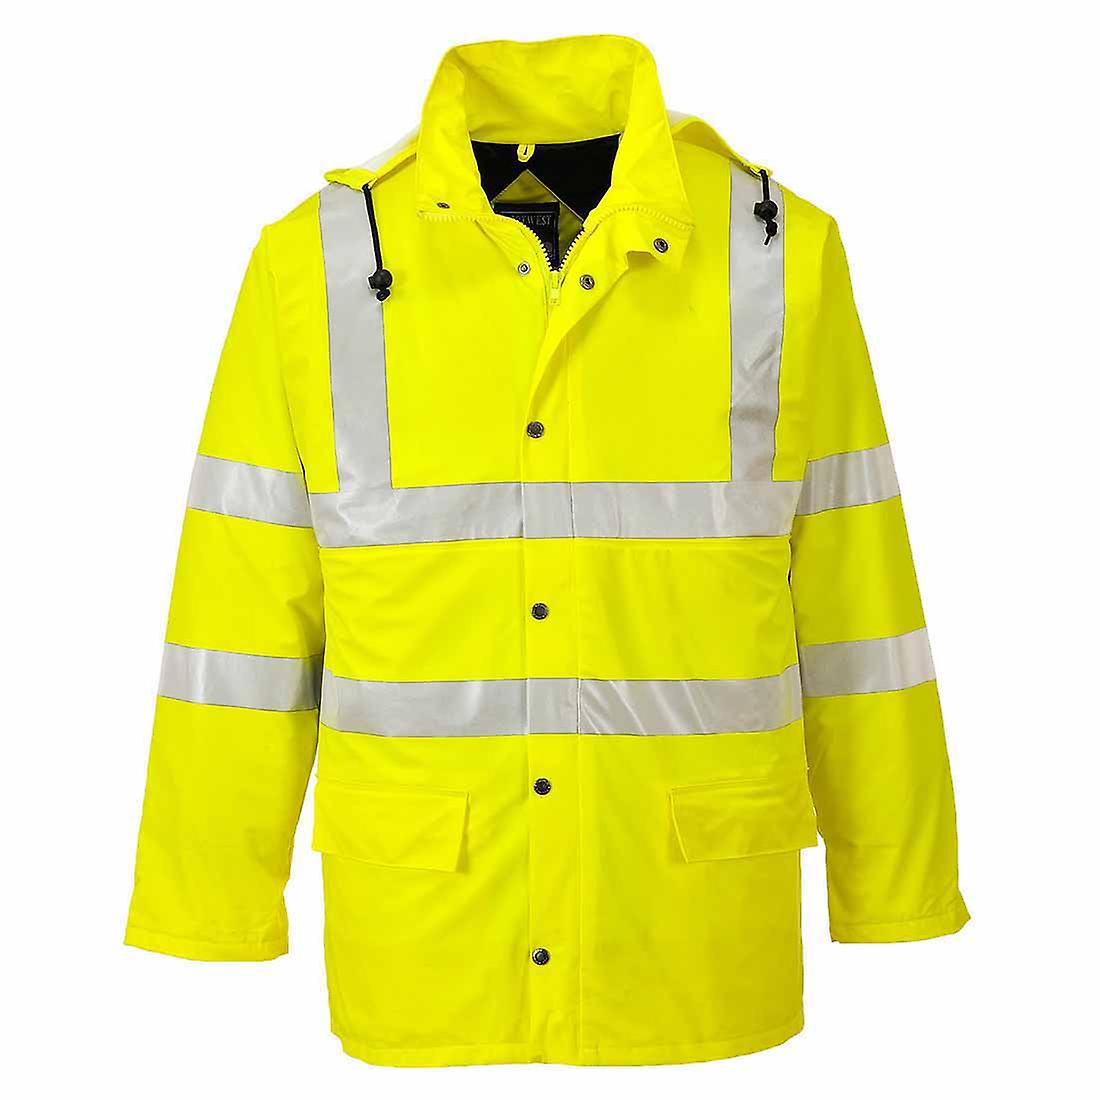 Portwest - Hi-Vis Safety Sealtex Ultra Lined Workwear Waterproof Hooded Jacket